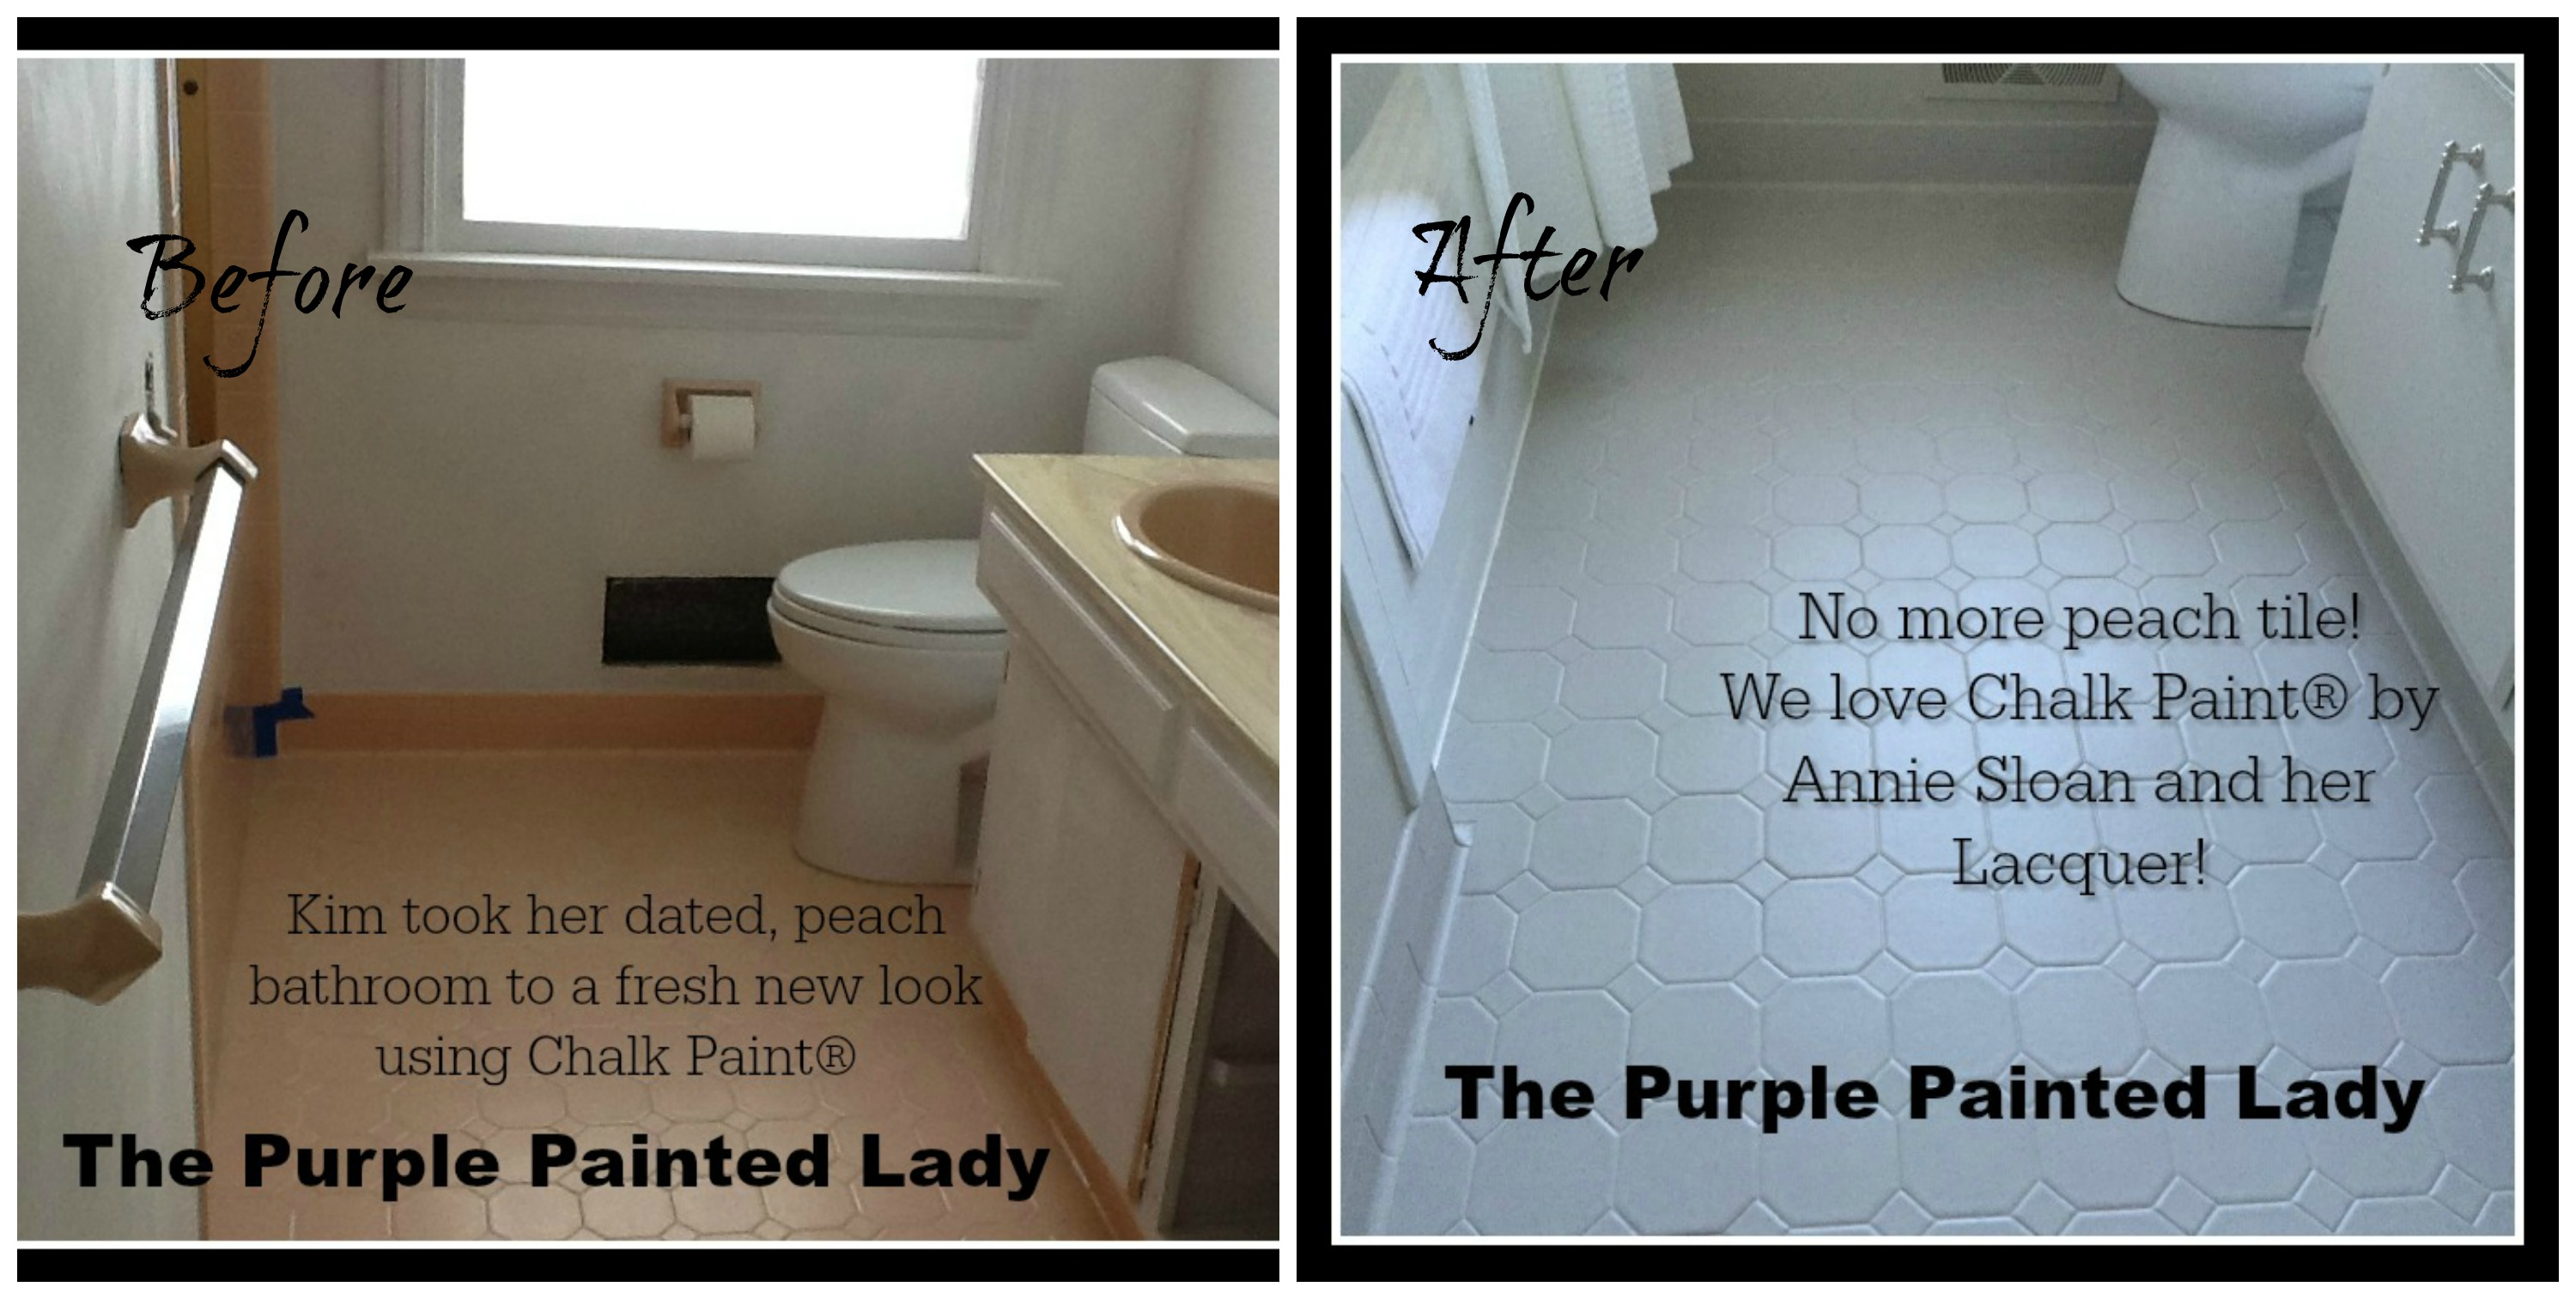 Painting tile in the bathroom with chalk paint the purple the purple painted lady kim gray before after chalk paint annie sloan dailygadgetfo Gallery